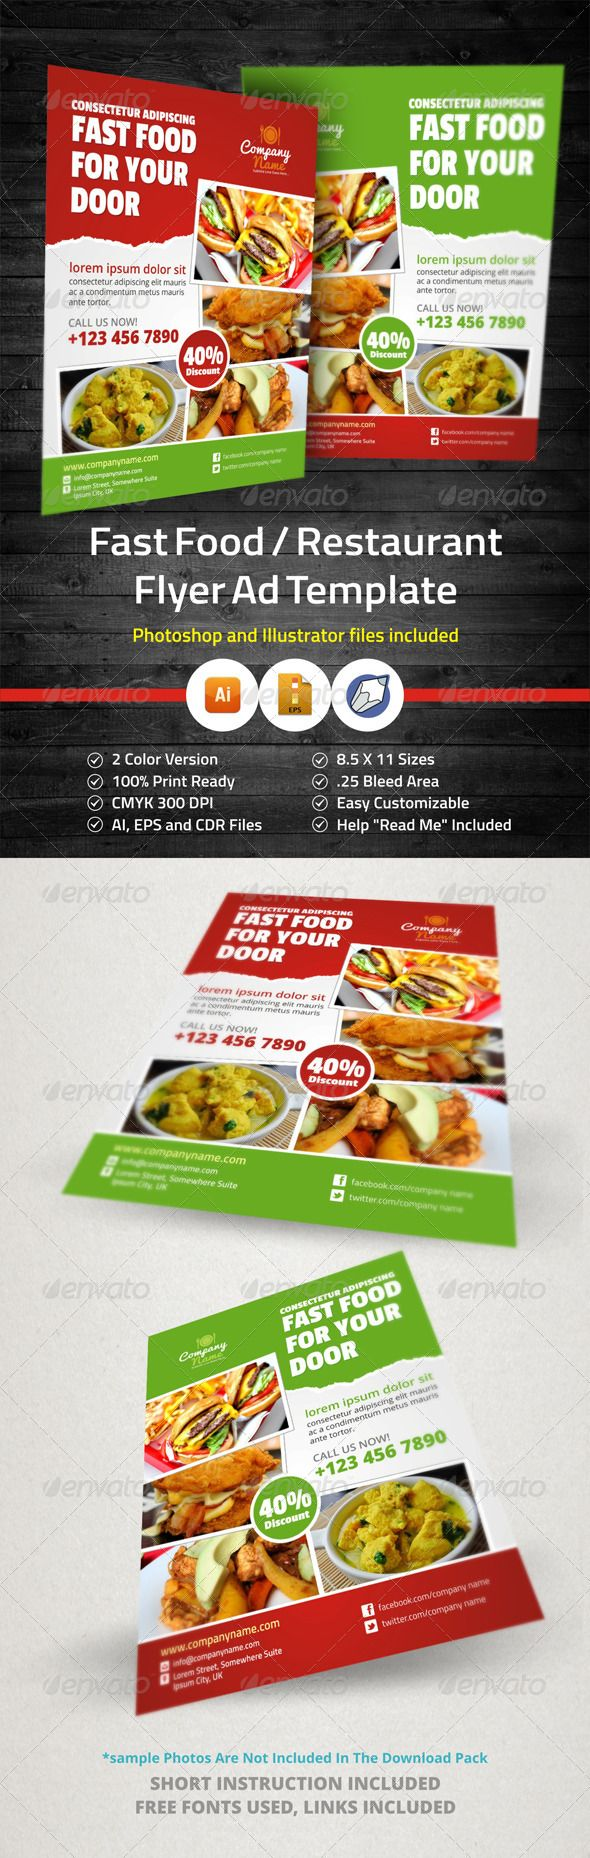 17 best images about program ad templates ad design fast food restaurant flyer ad template